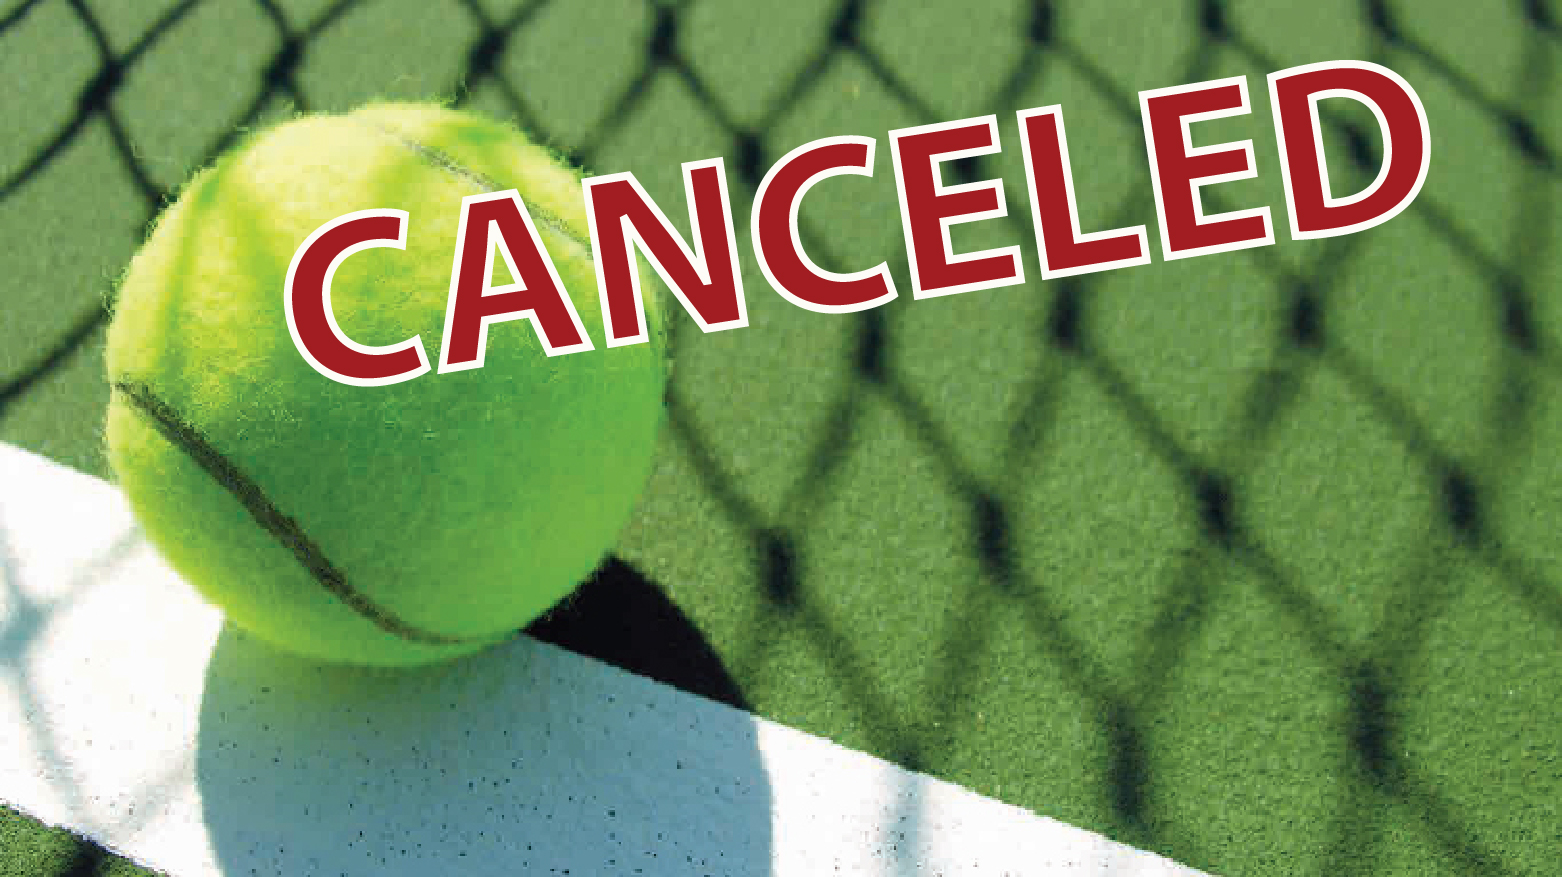 Boots on the Court Free Tennis Clinics - CANCELED